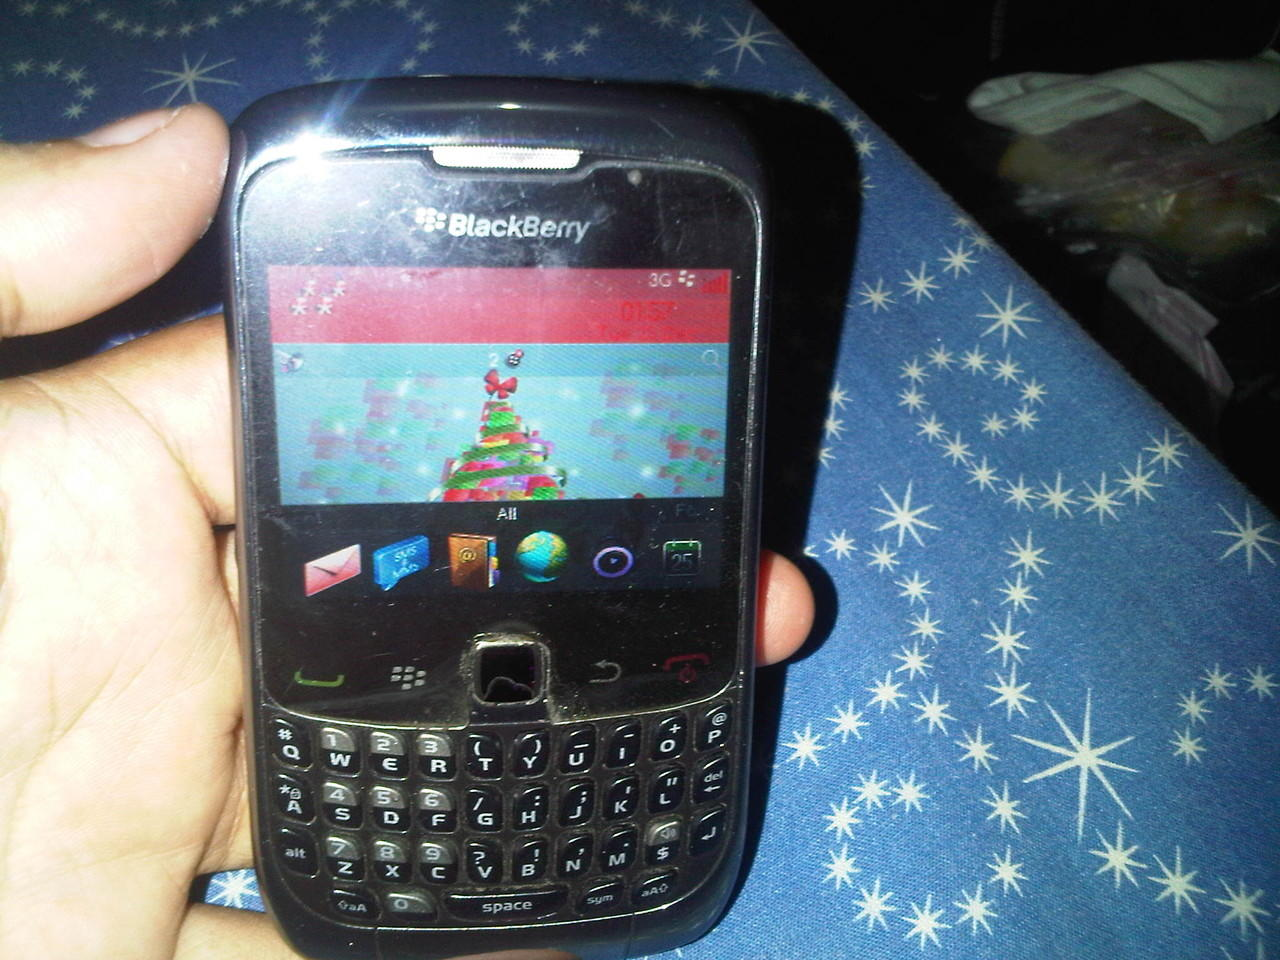 blackberry keppler 9300